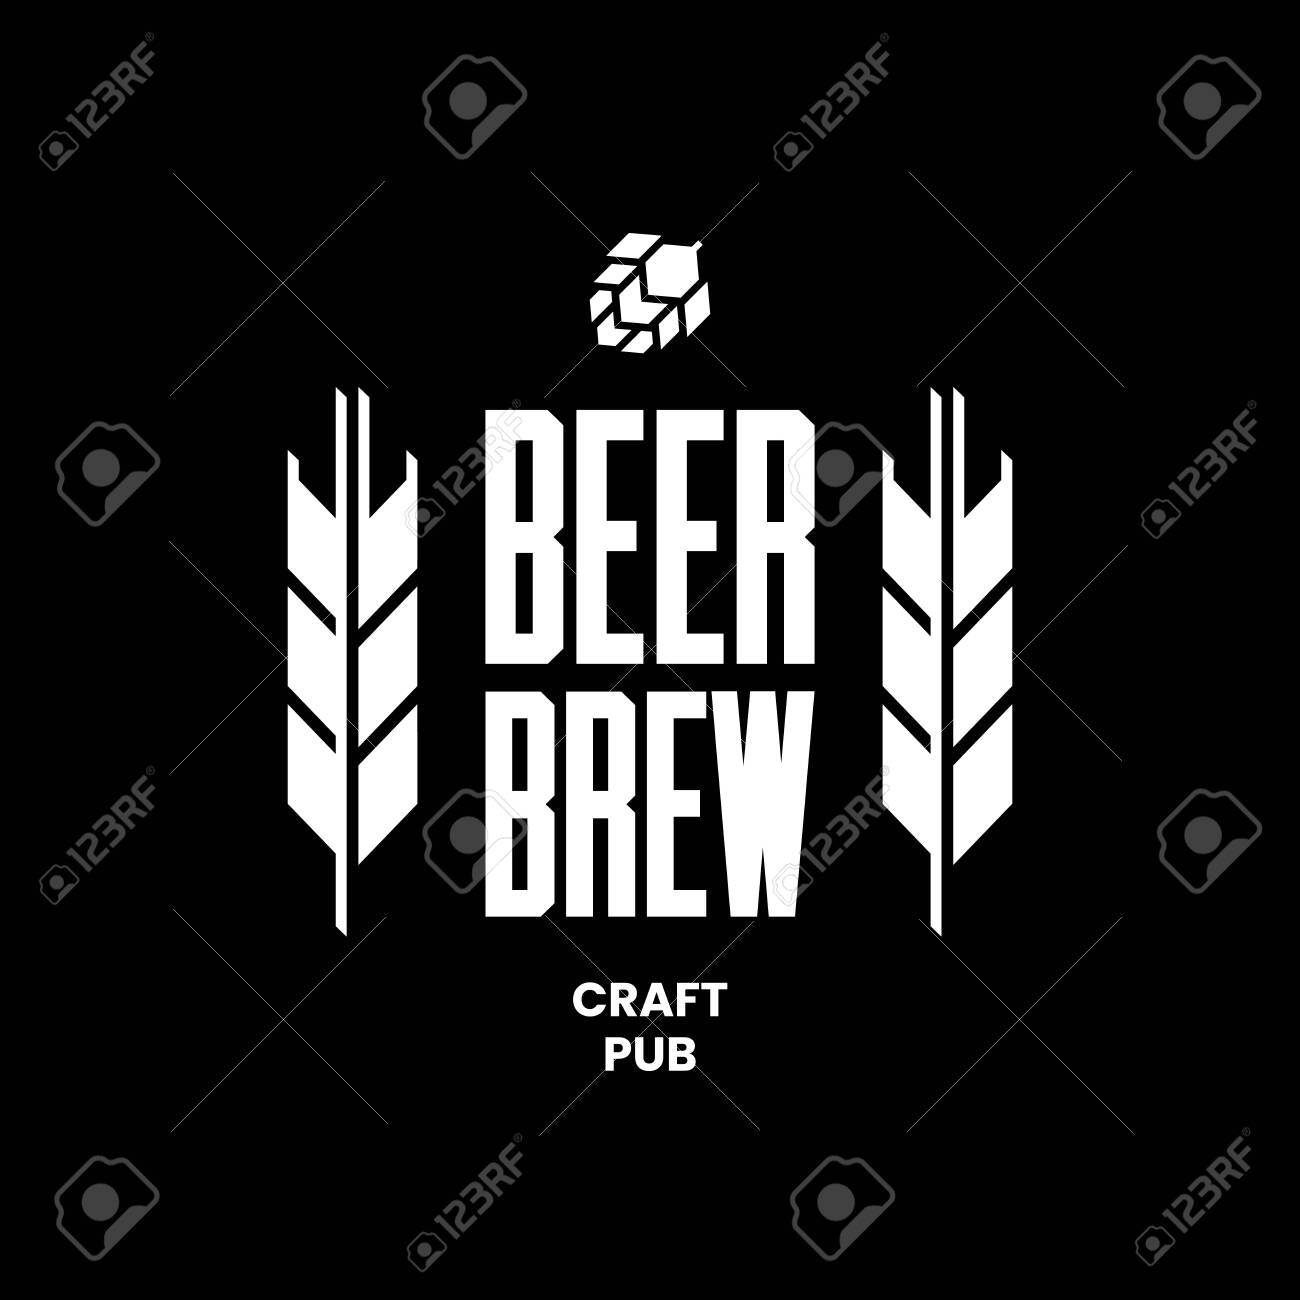 Modern craft beer drink vector logo sign for bar, pub, store, brewhouse or brewery isolated on black background. Premium quality emblem logotype illustration. Brewing fest fashion t-shirt badge design. - 120438756